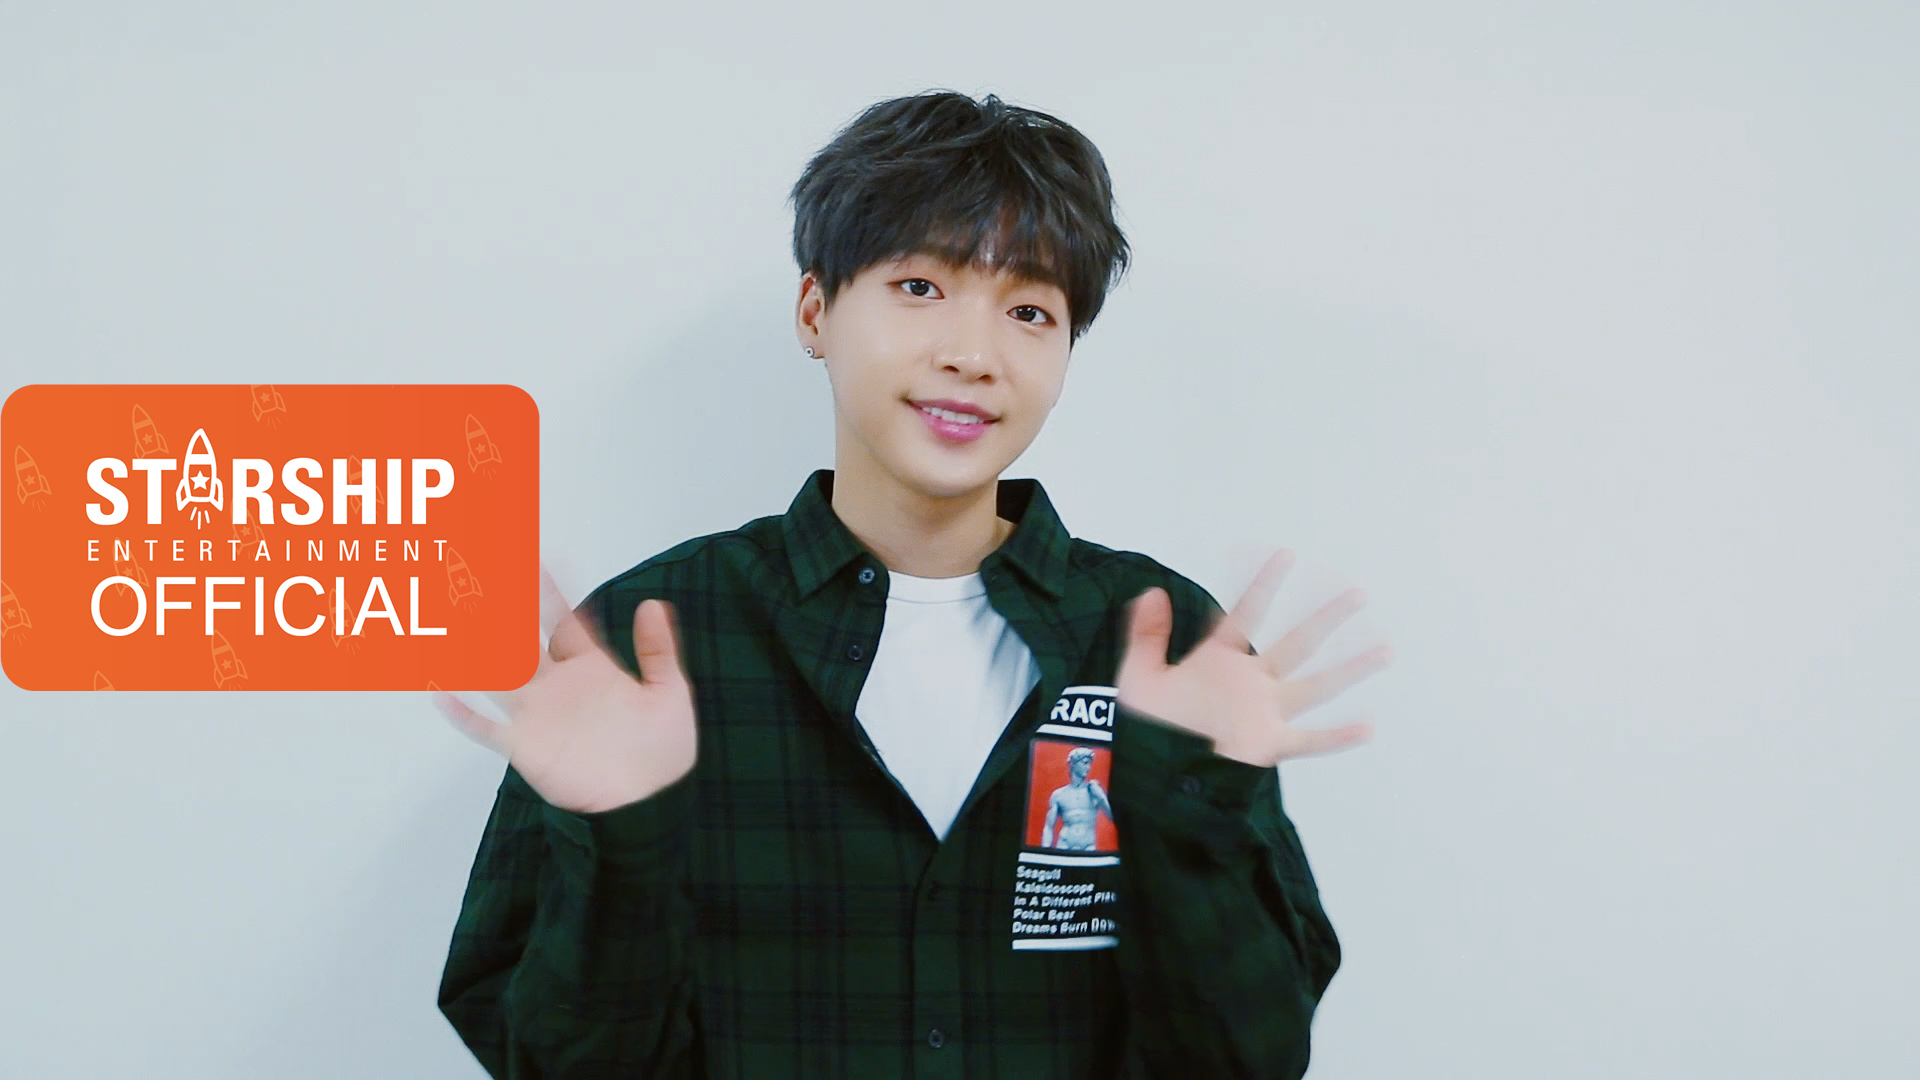 [Special Clip] 정세운(JEONG SEWOON) - 2018 설날인사 (2018 New Year's Greetings)